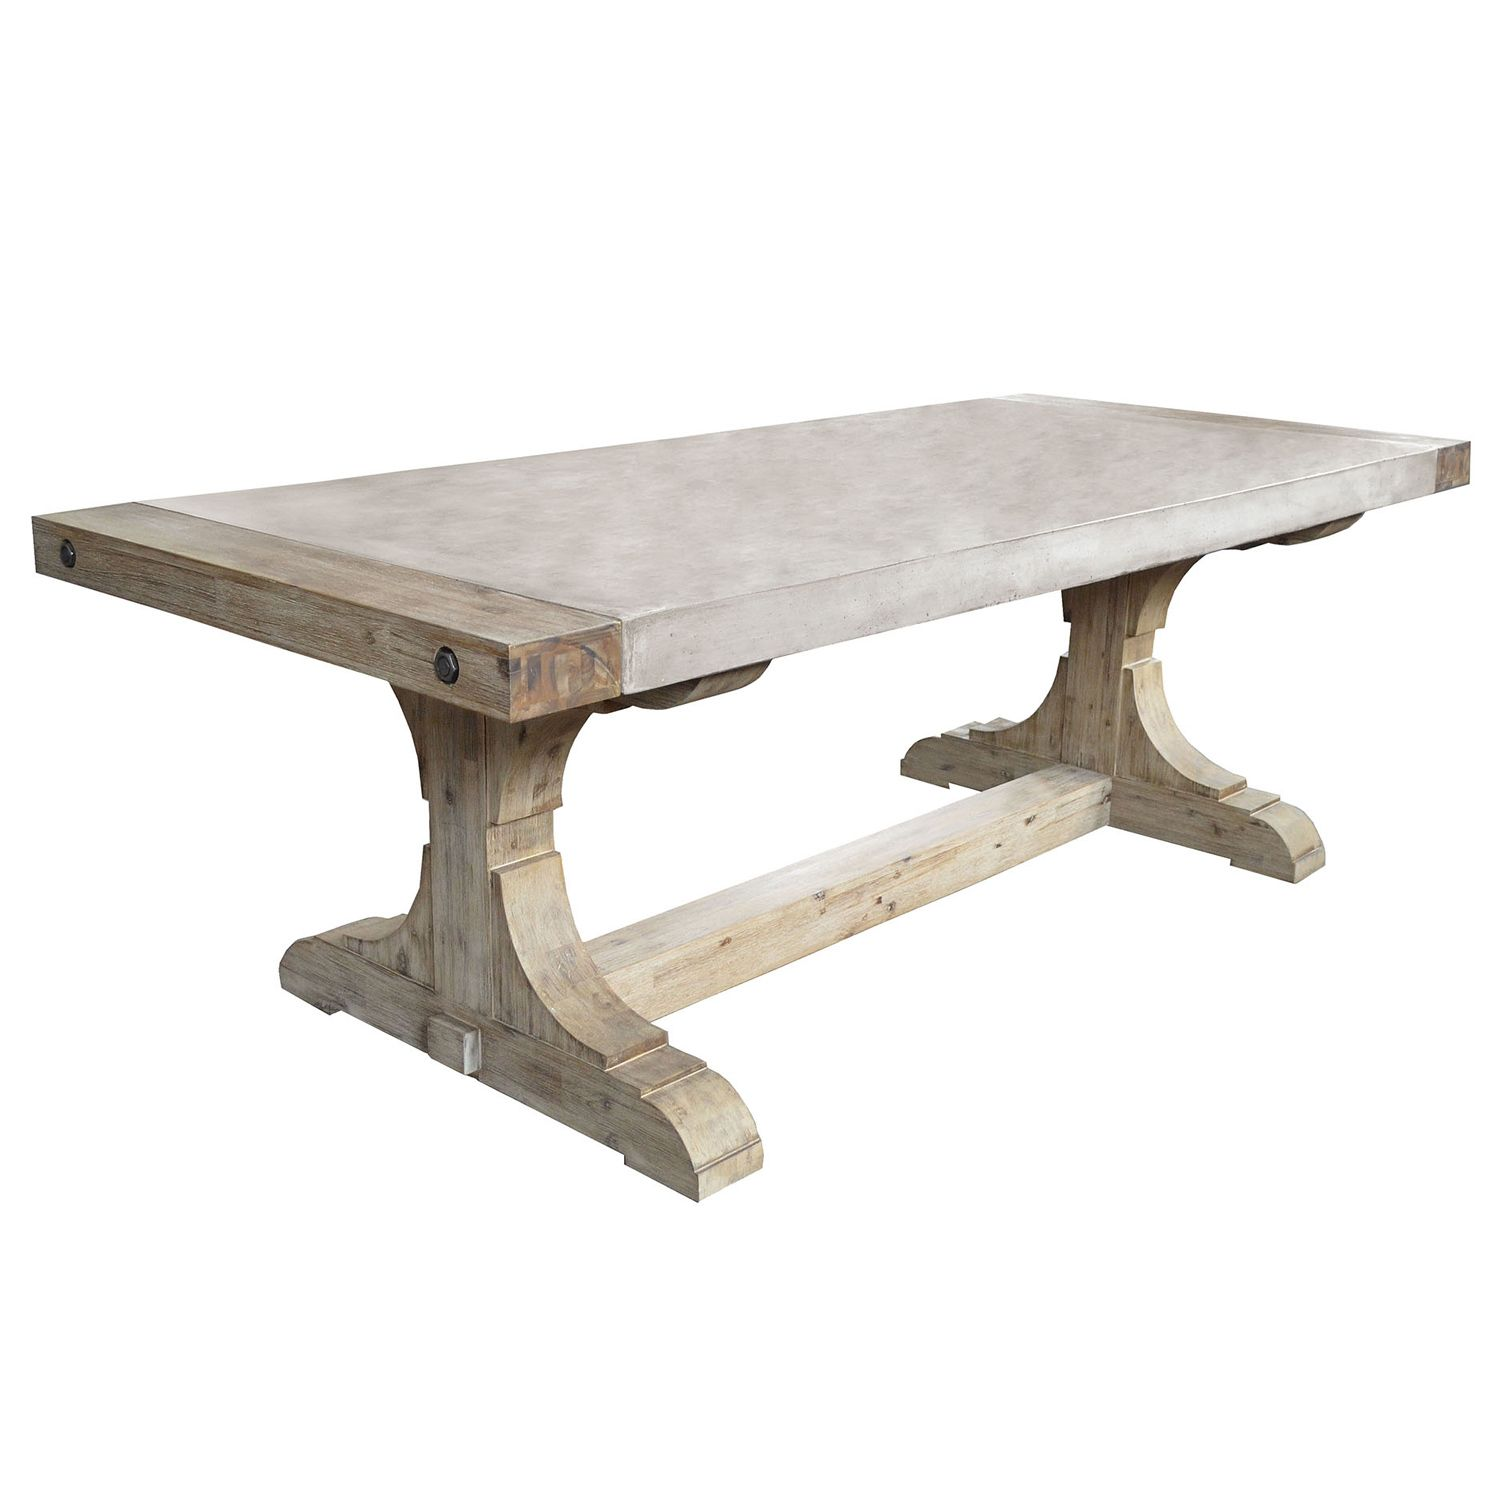 The Pirate dining table offers modern design with an industrial